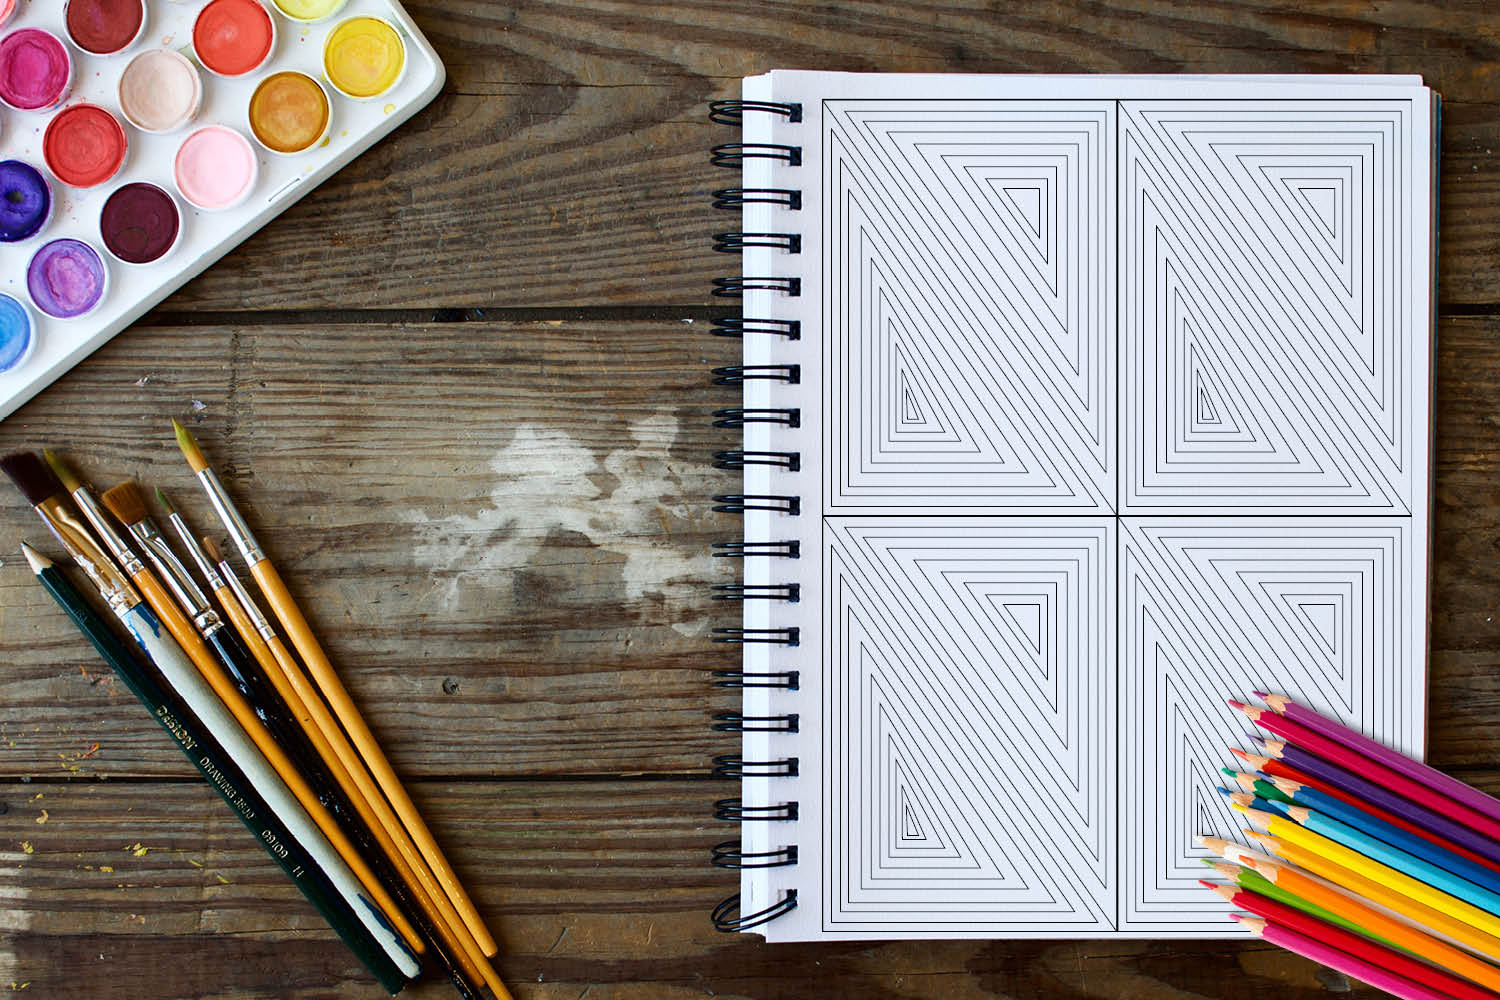 Geometric Patterns Coloring Book 30 Geometric Designs example image 3